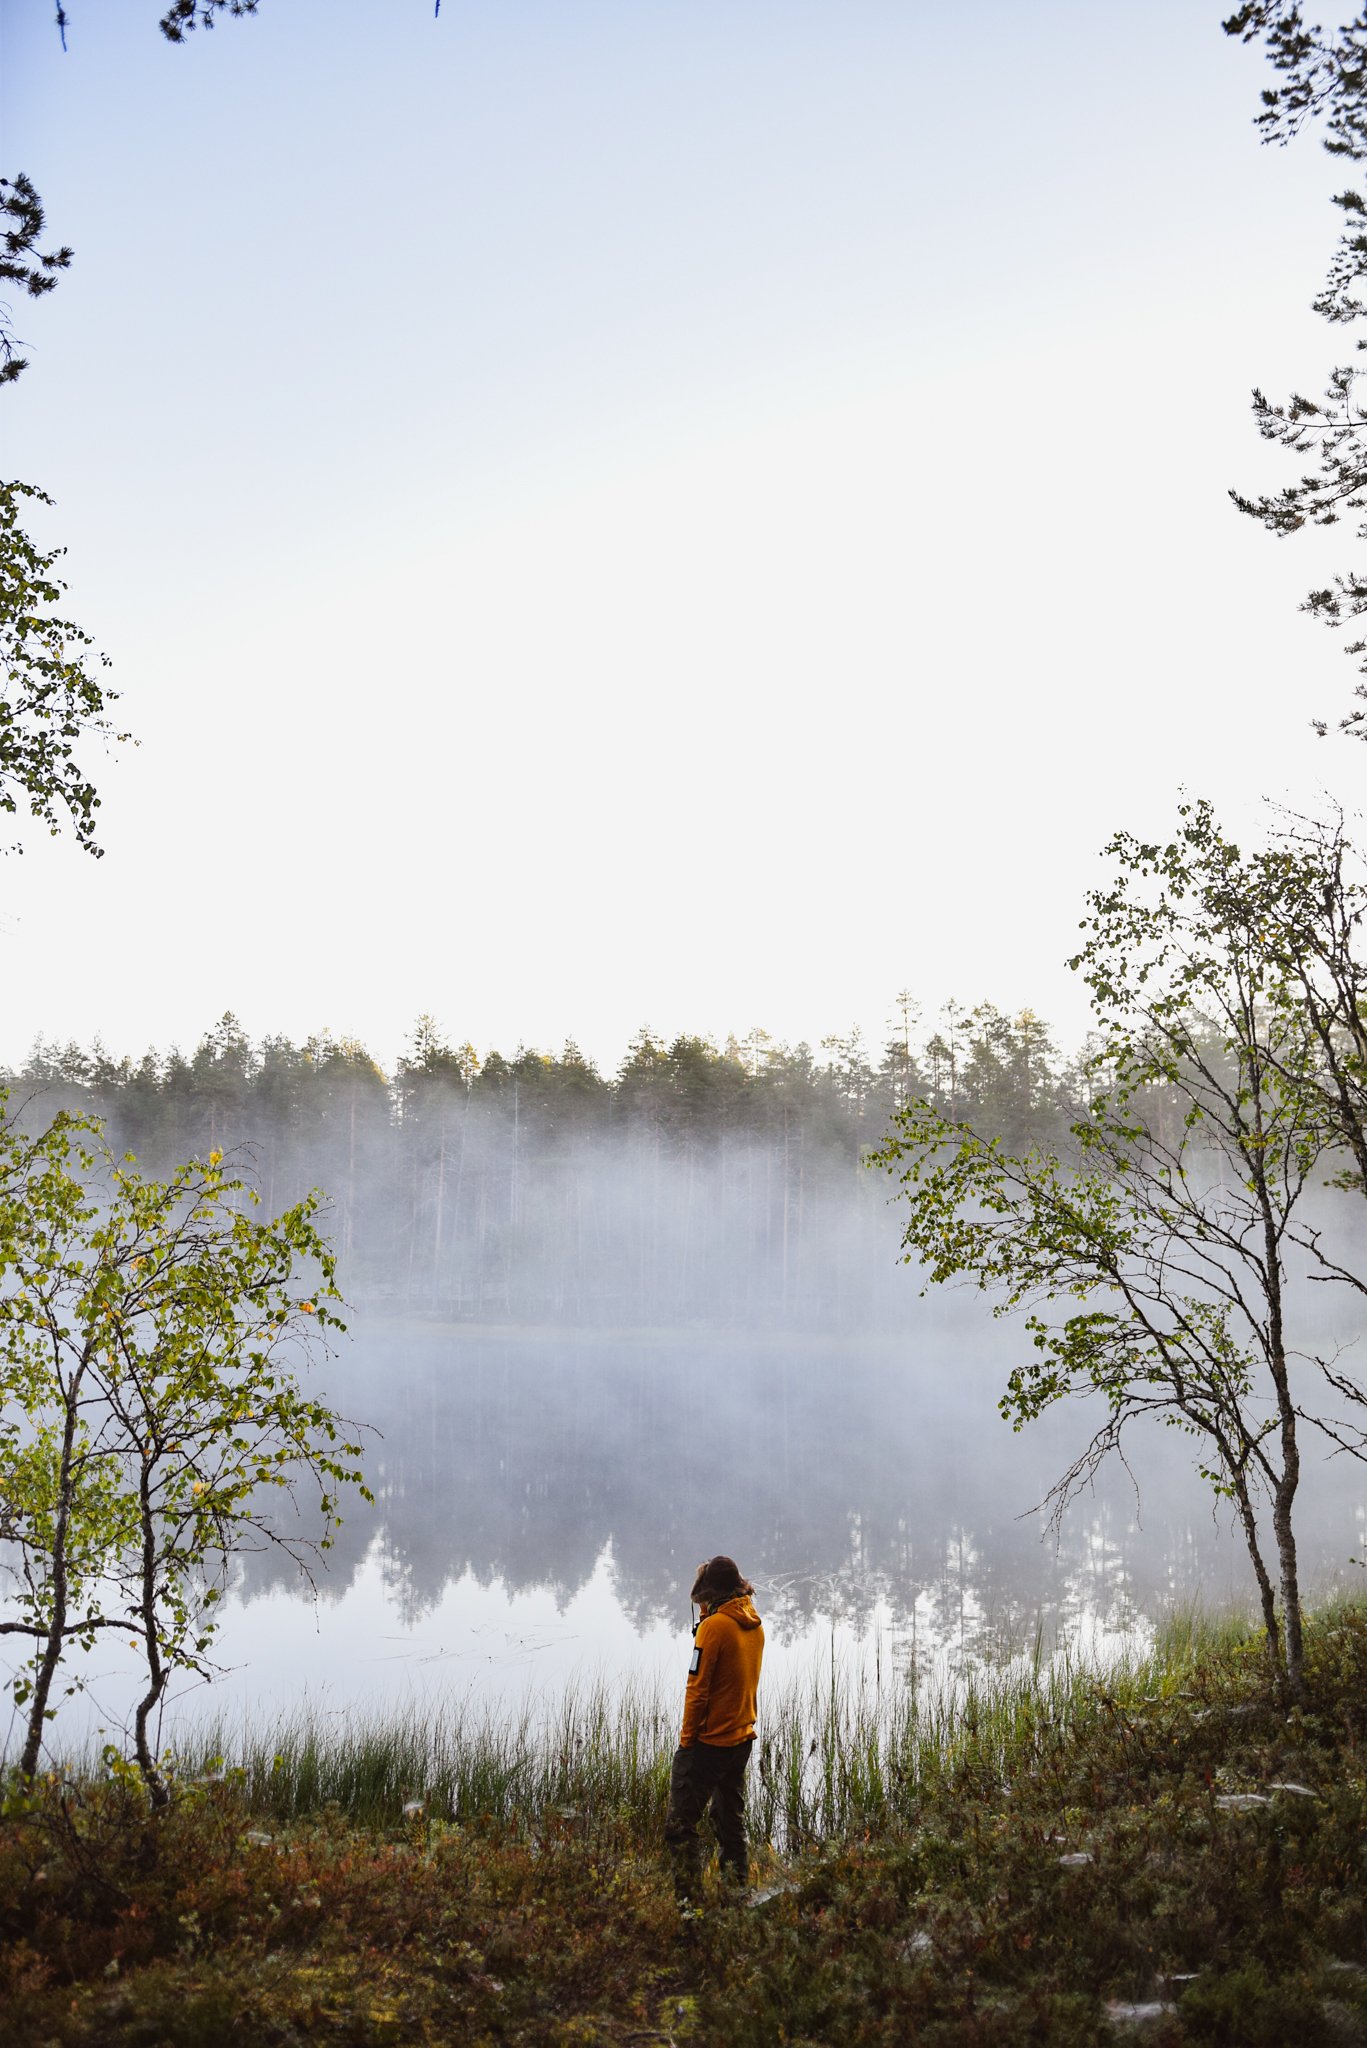 Finnish summer ways to connect with nature and yourself by doing morning routines outdoors